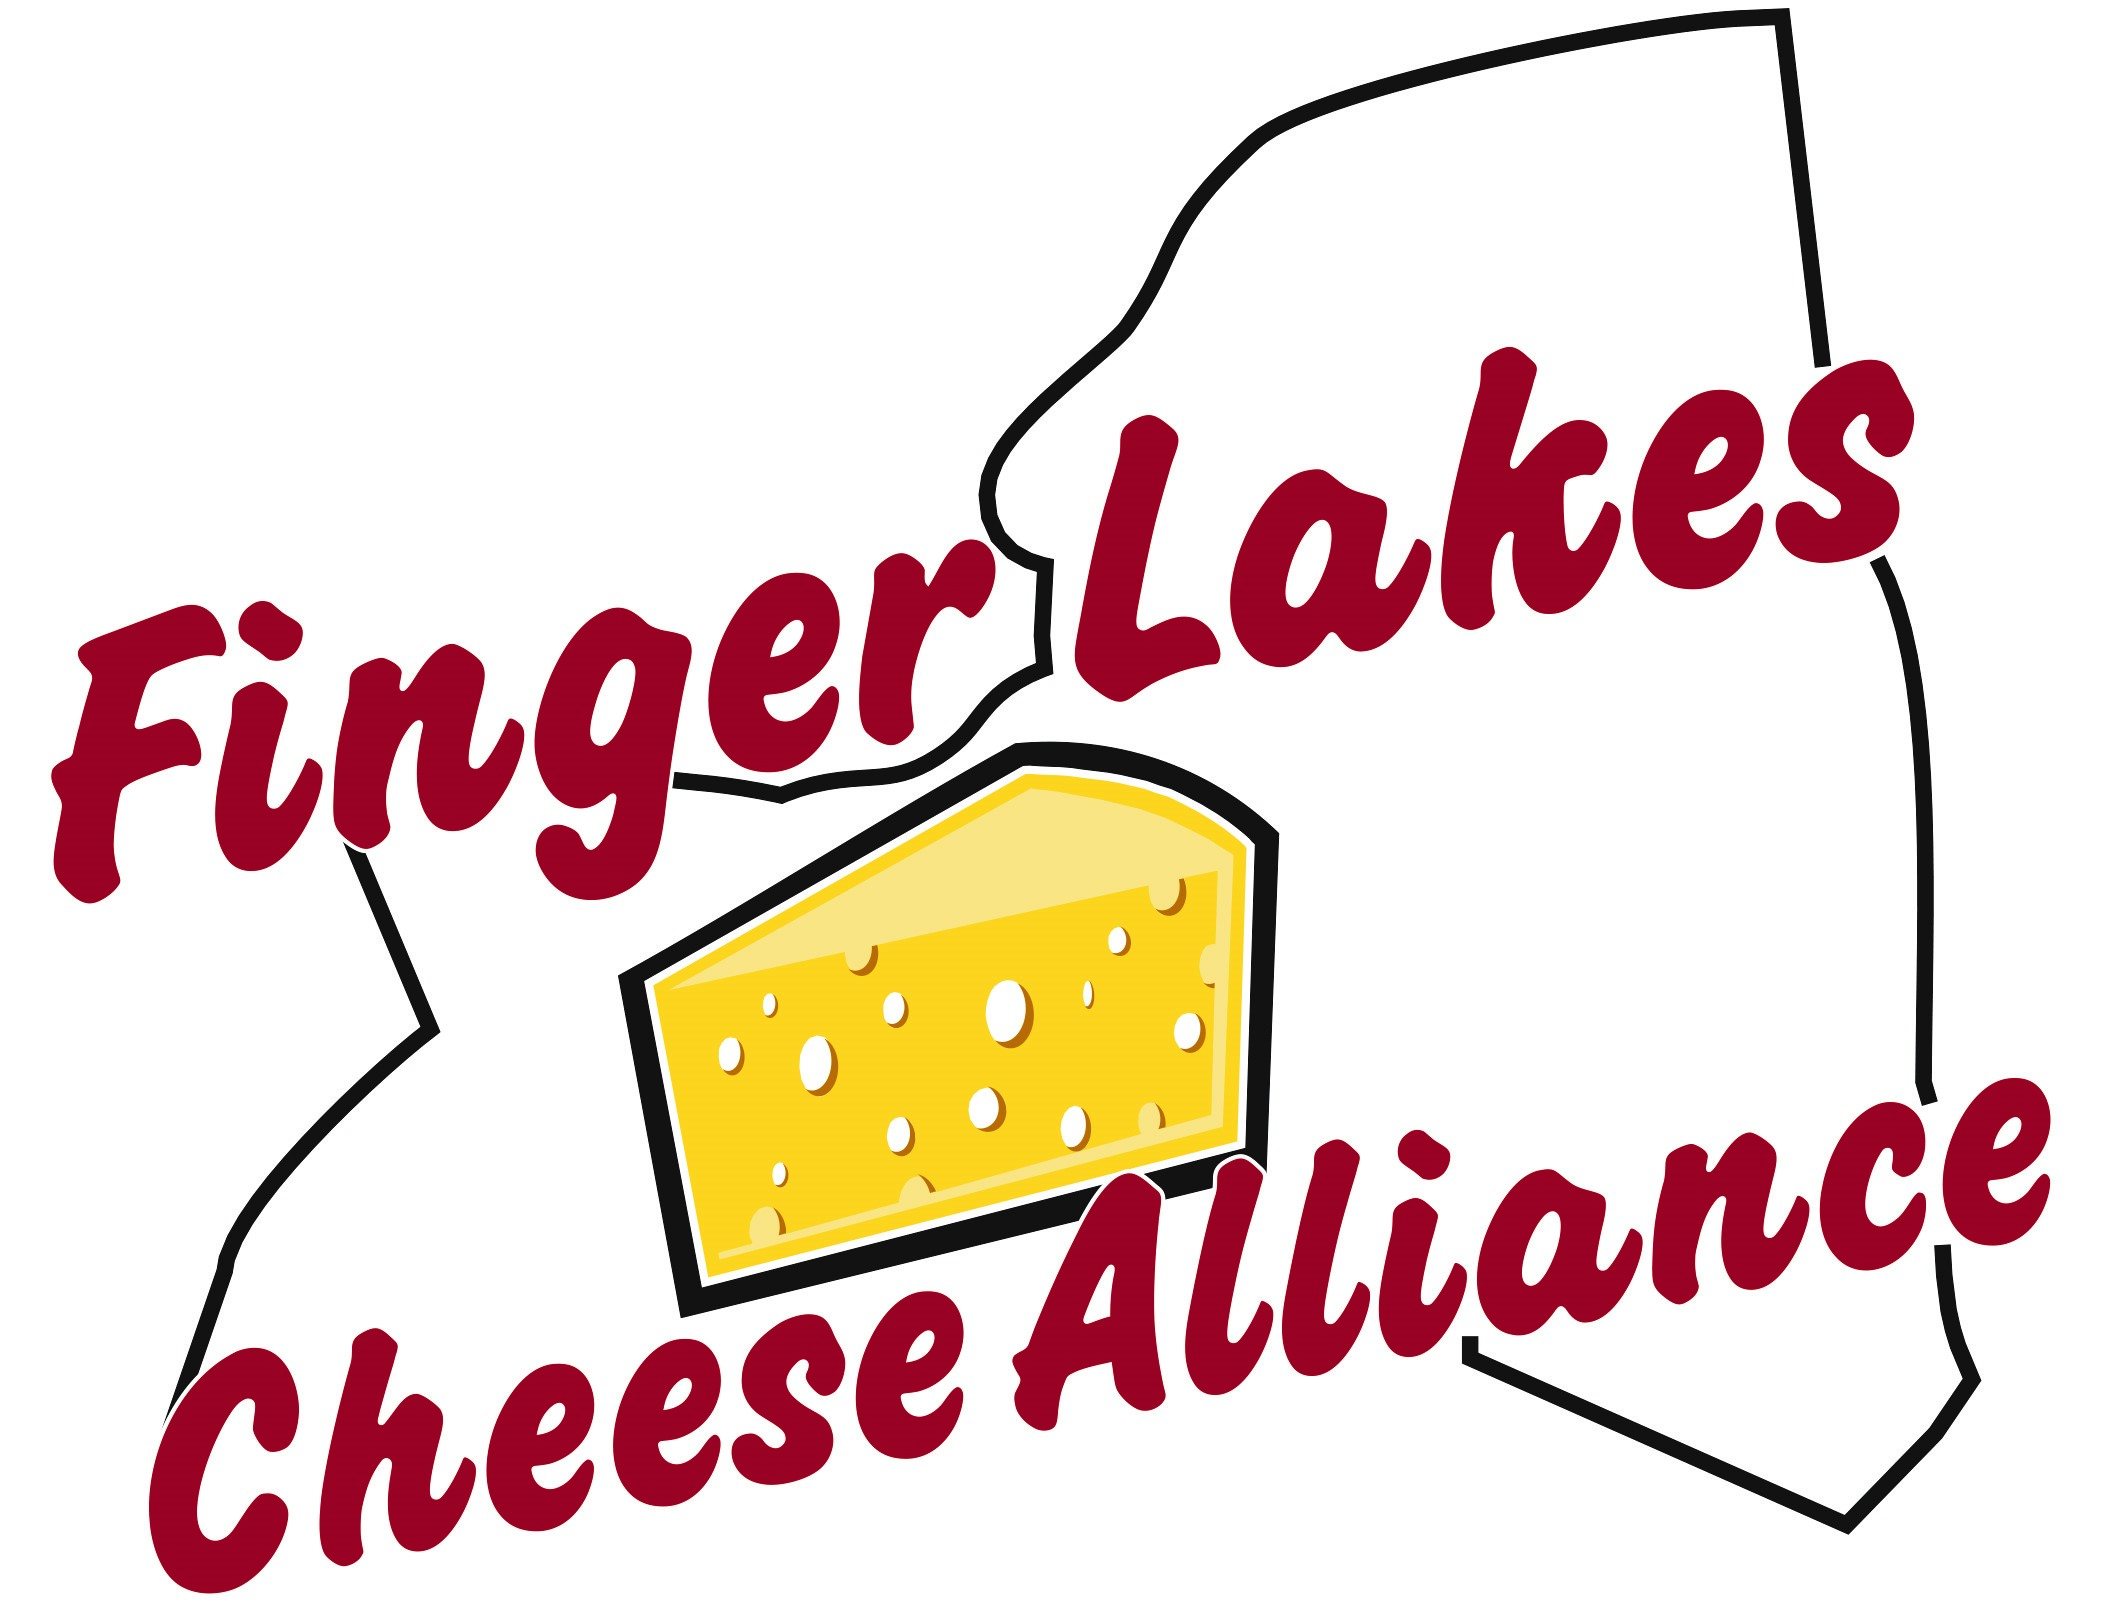 Finger Lakes Cheese Alliance